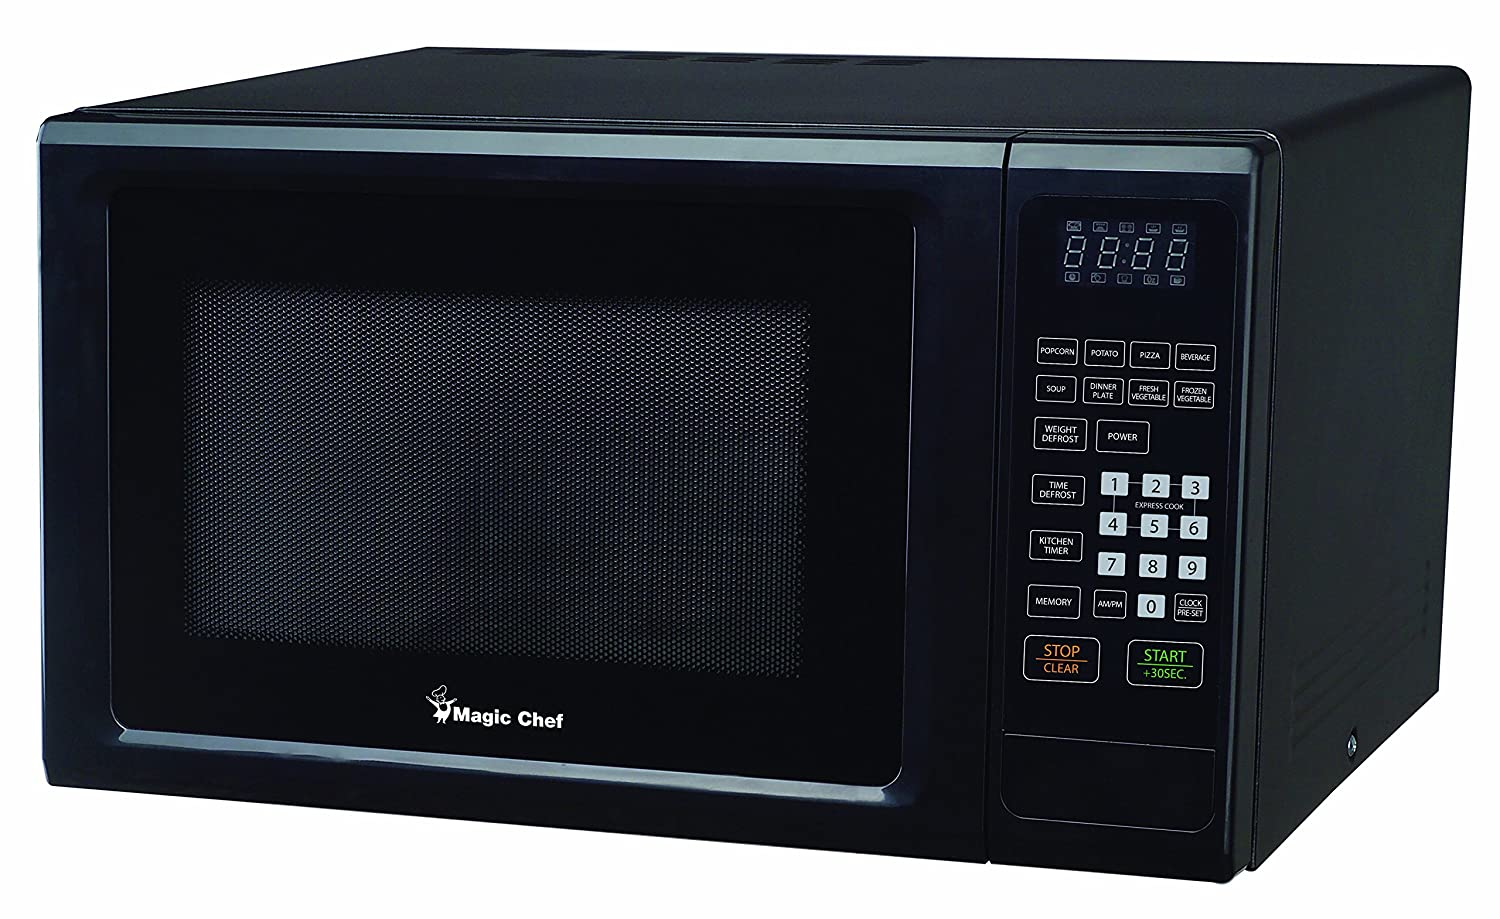 Magic Chef MCM1110B 1.1 Cu. Ft. 1000W Countertop Microwave Oven with Push-Button Door in Black